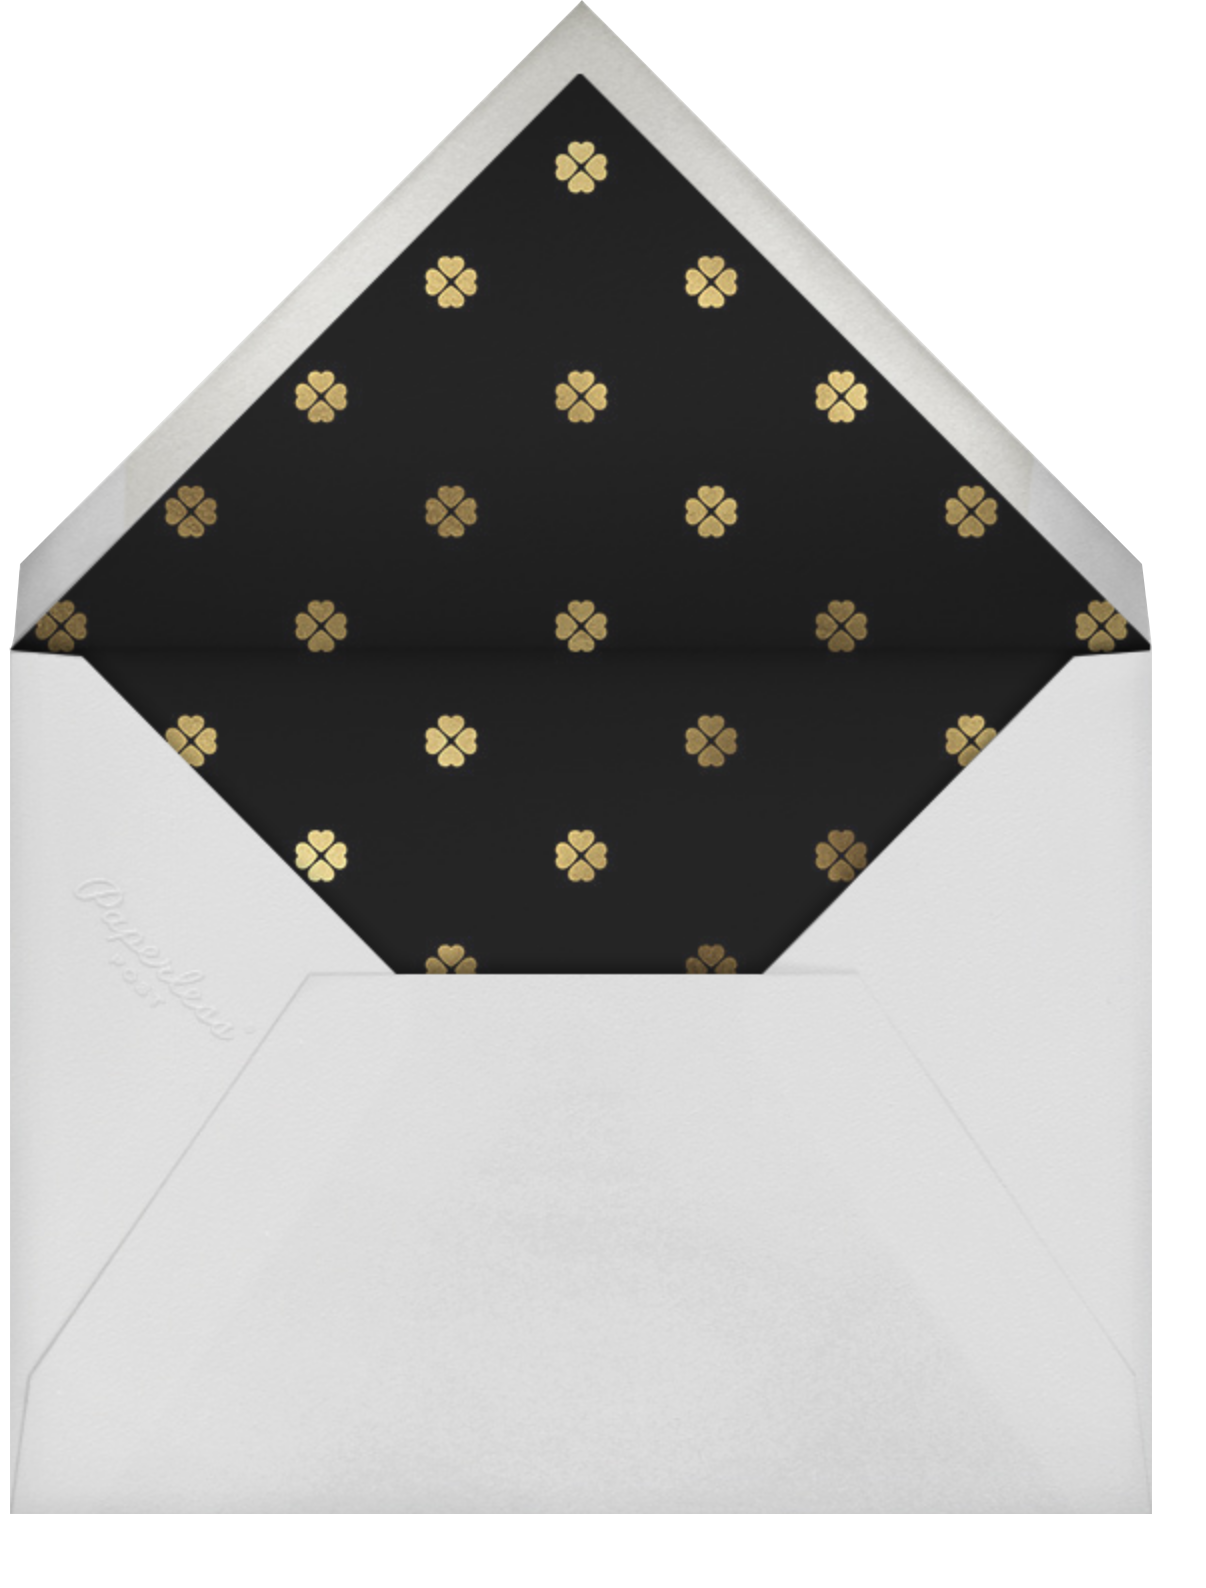 Let's Groove - Black - kate spade new york - New Year's Eve - envelope back